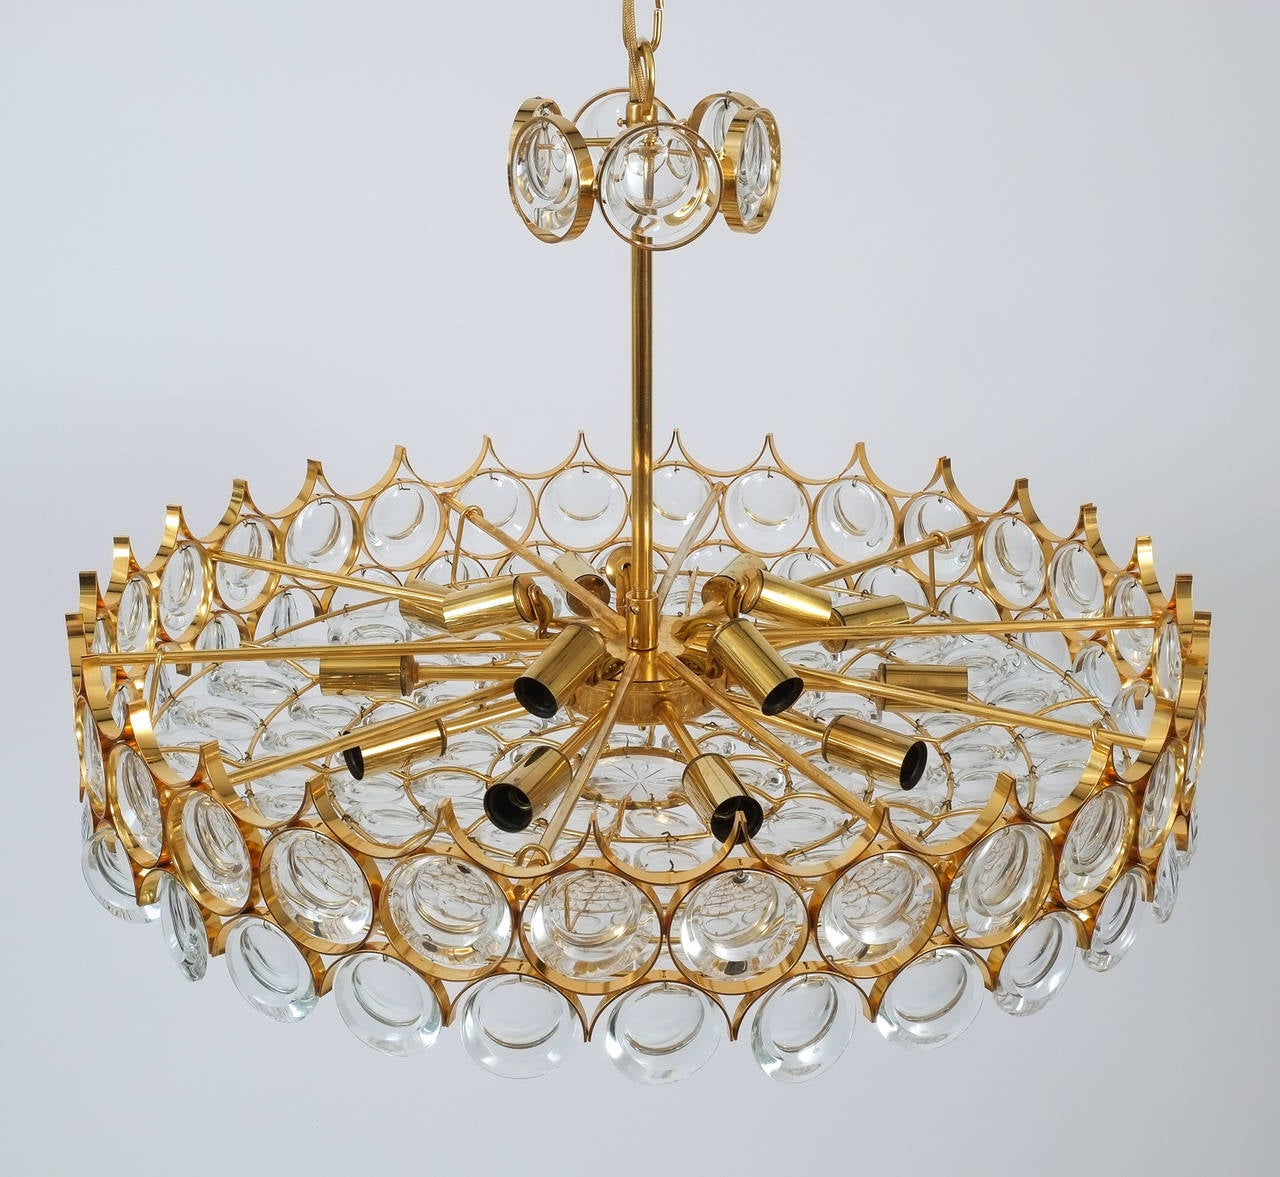 German Palwa Gold Brass and Glass Large Chandelier Ceiling Lamp, 1960 For Sale